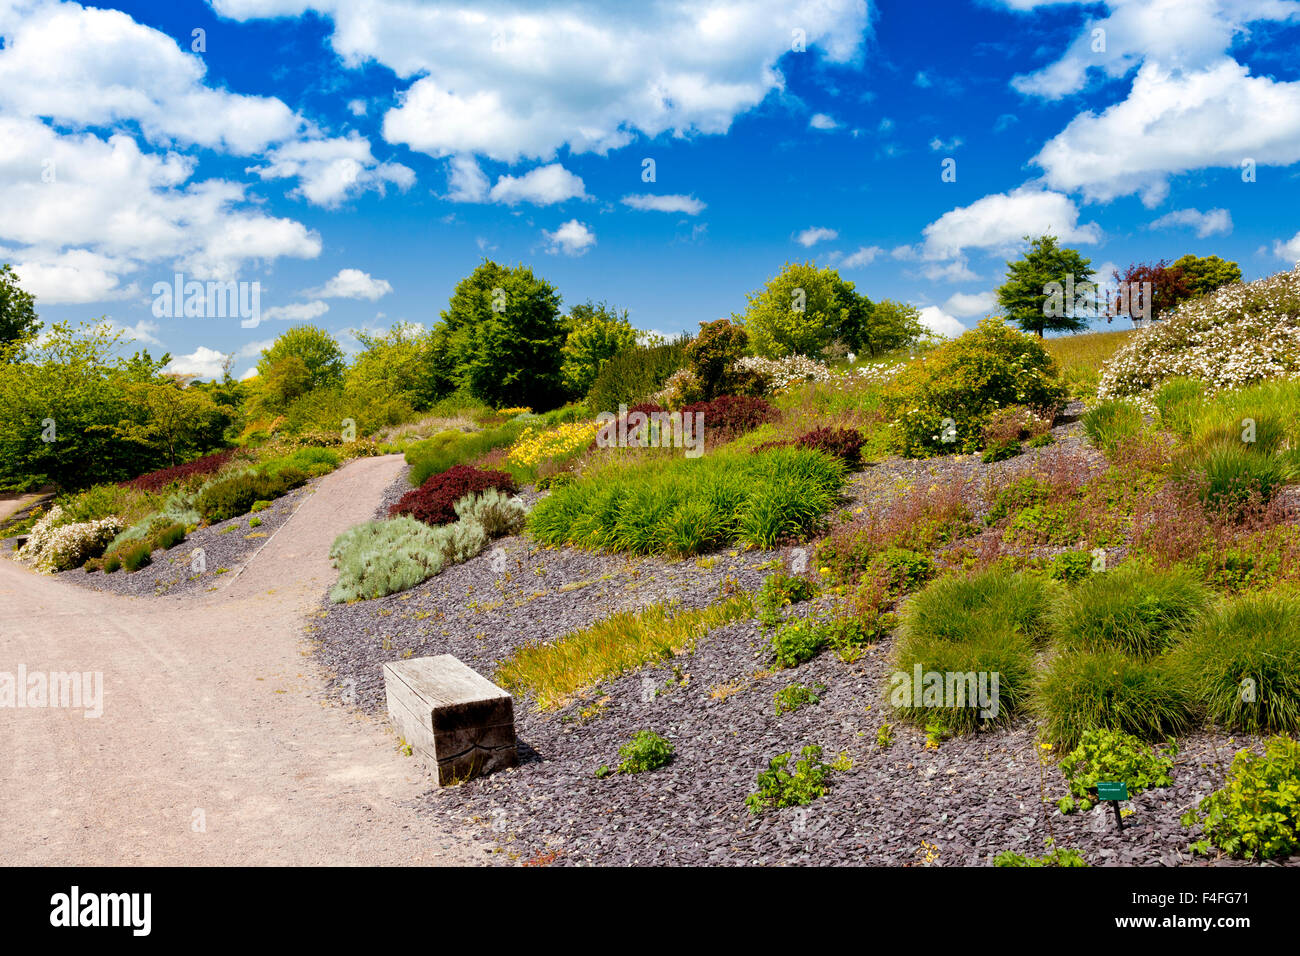 The slate beds at the National Botanical Gardens of Wales, Carmarthenshire, Wales, UK - Stock Image